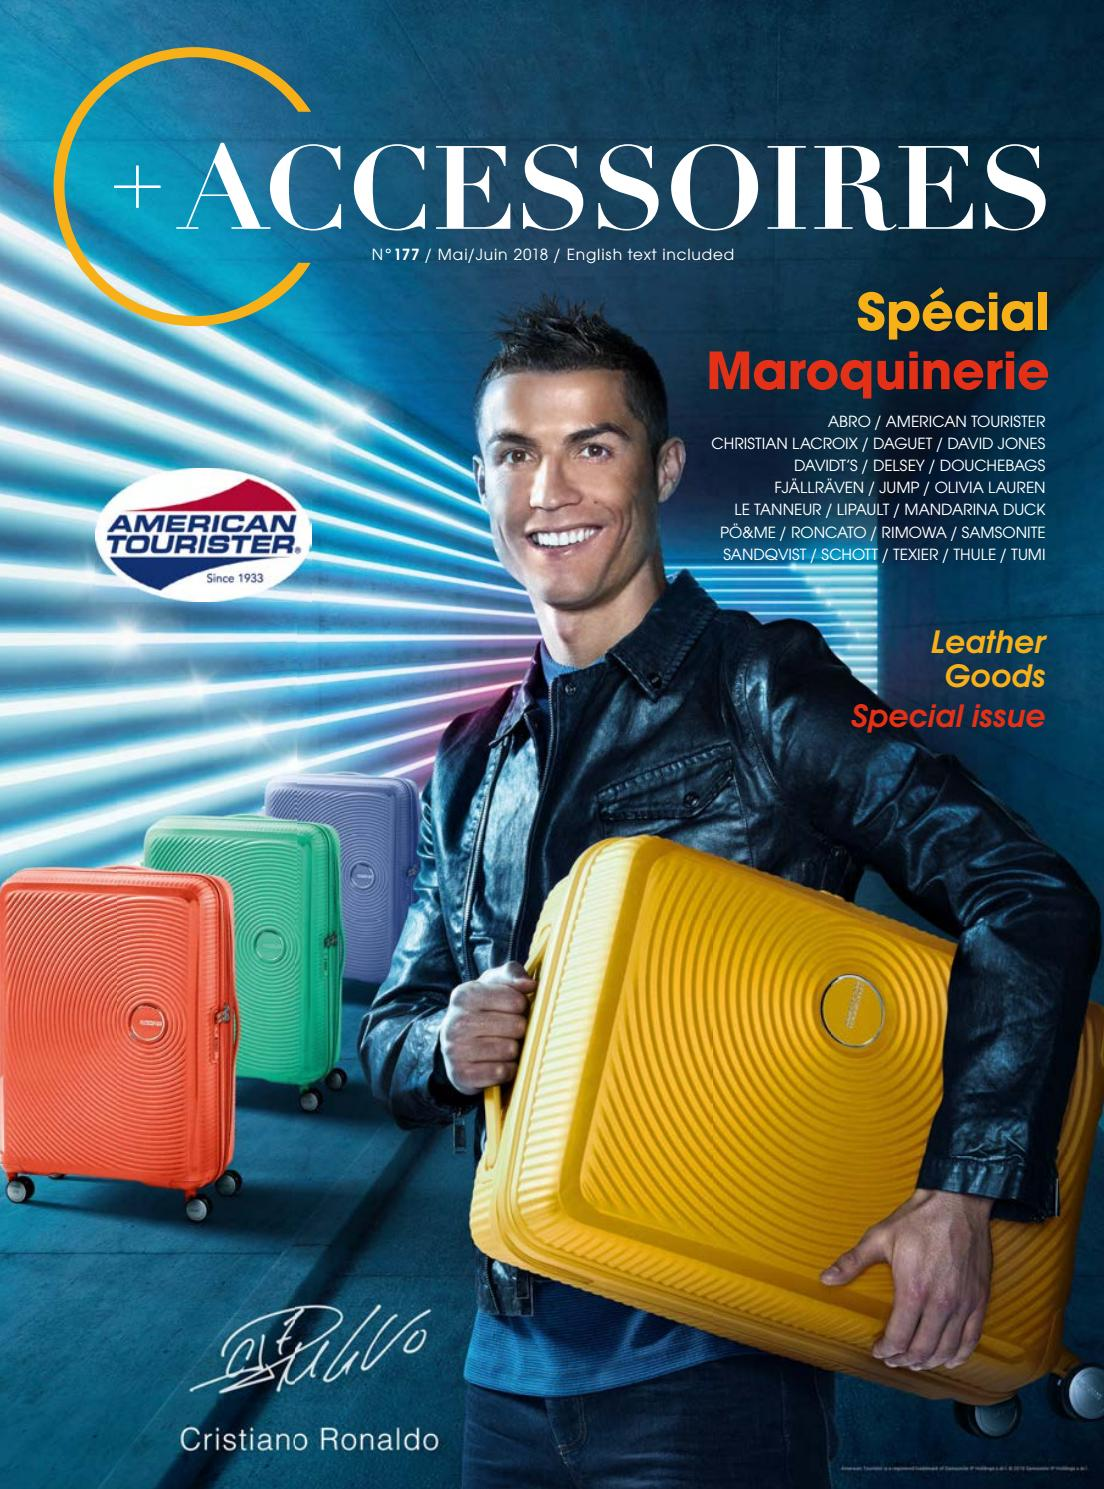 d6c2691b27 N°177 May/June 2018 by C+ accessoires - issuu